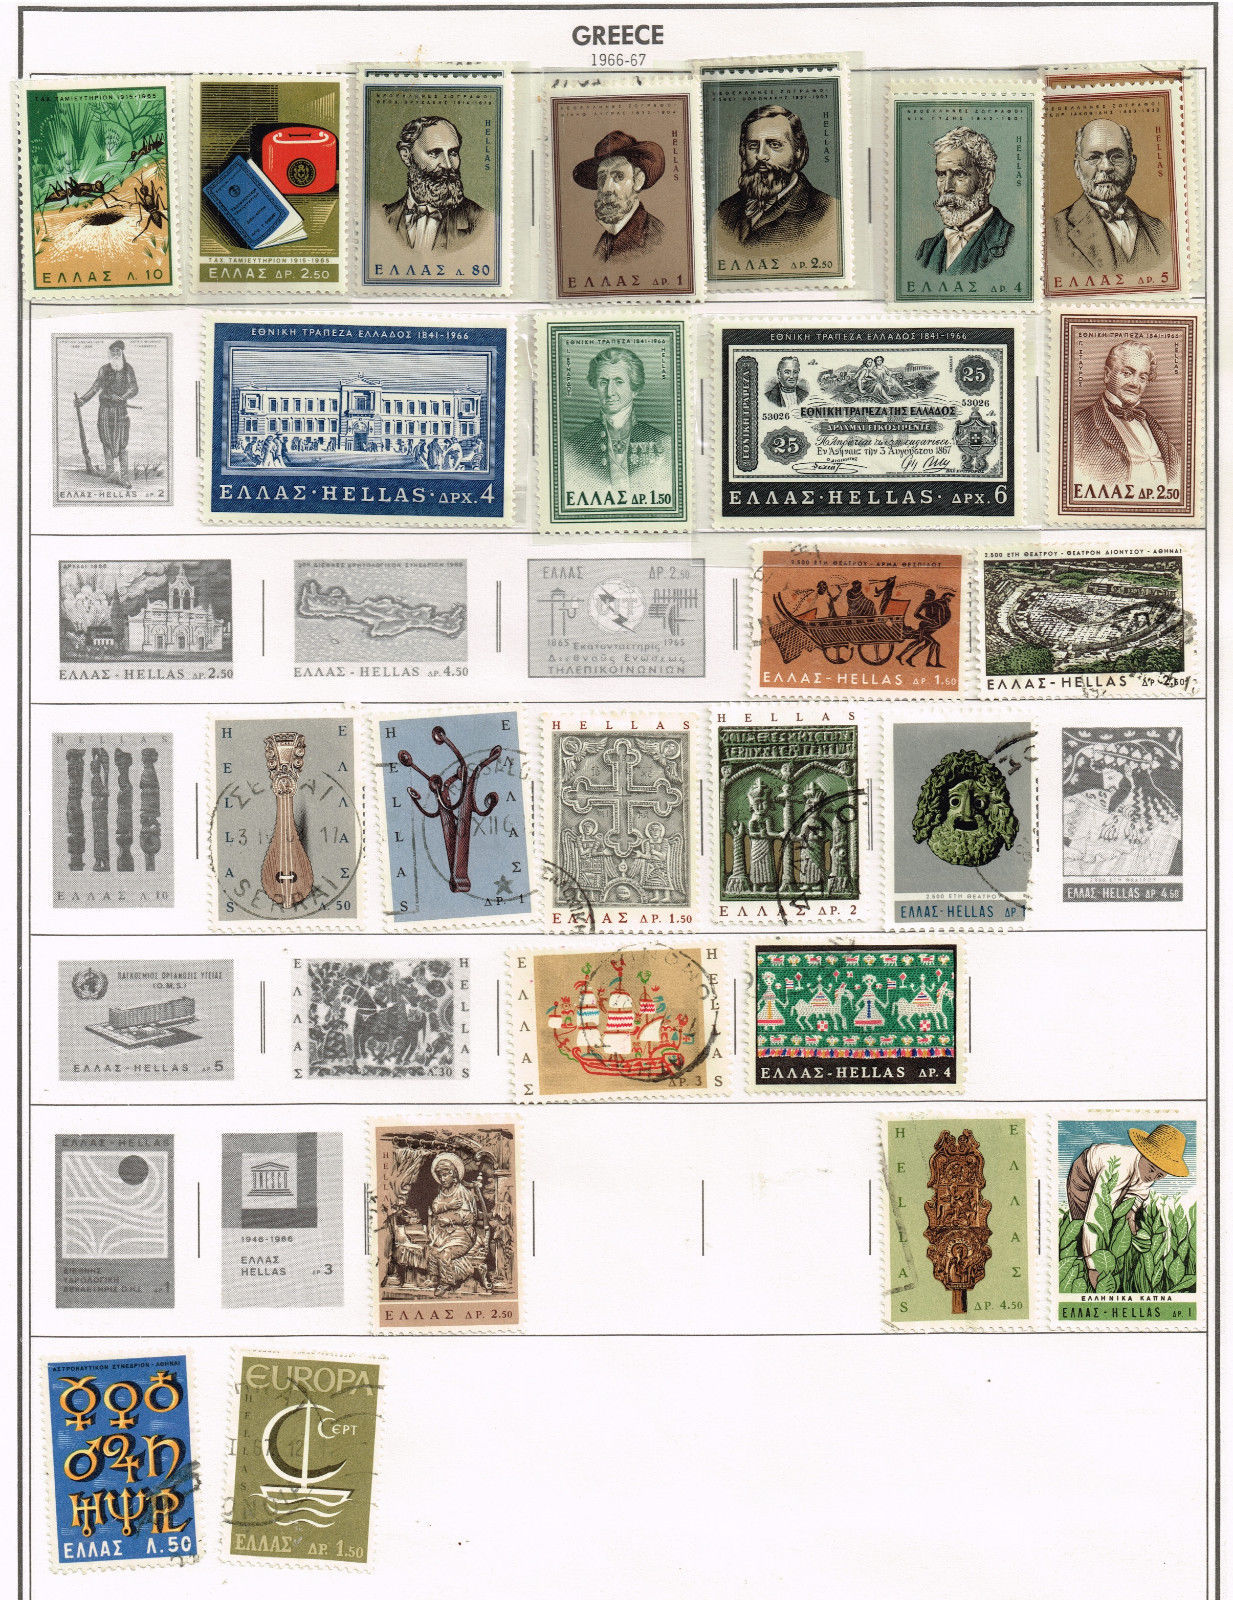 110 Greece 1961 - 1971 stamps image 3